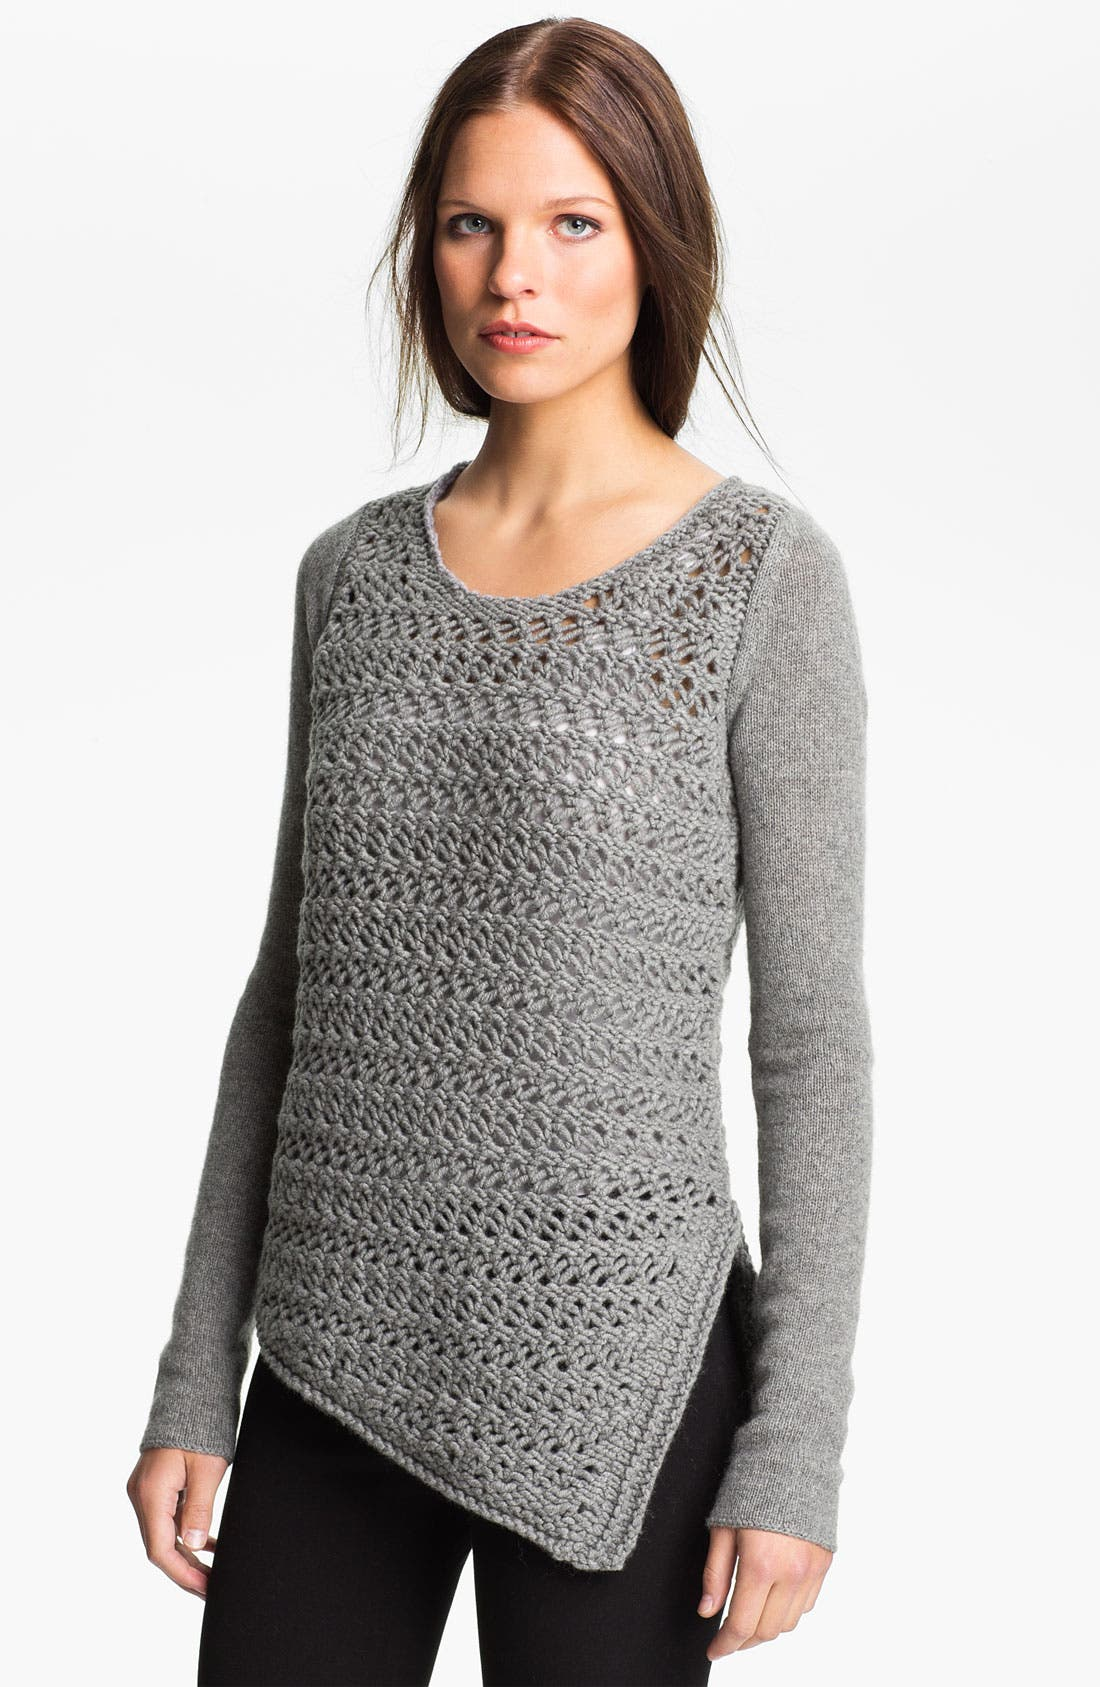 Alternate Image 1 Selected - Helmut Lang Wool & Cashmere Pullover Sweater